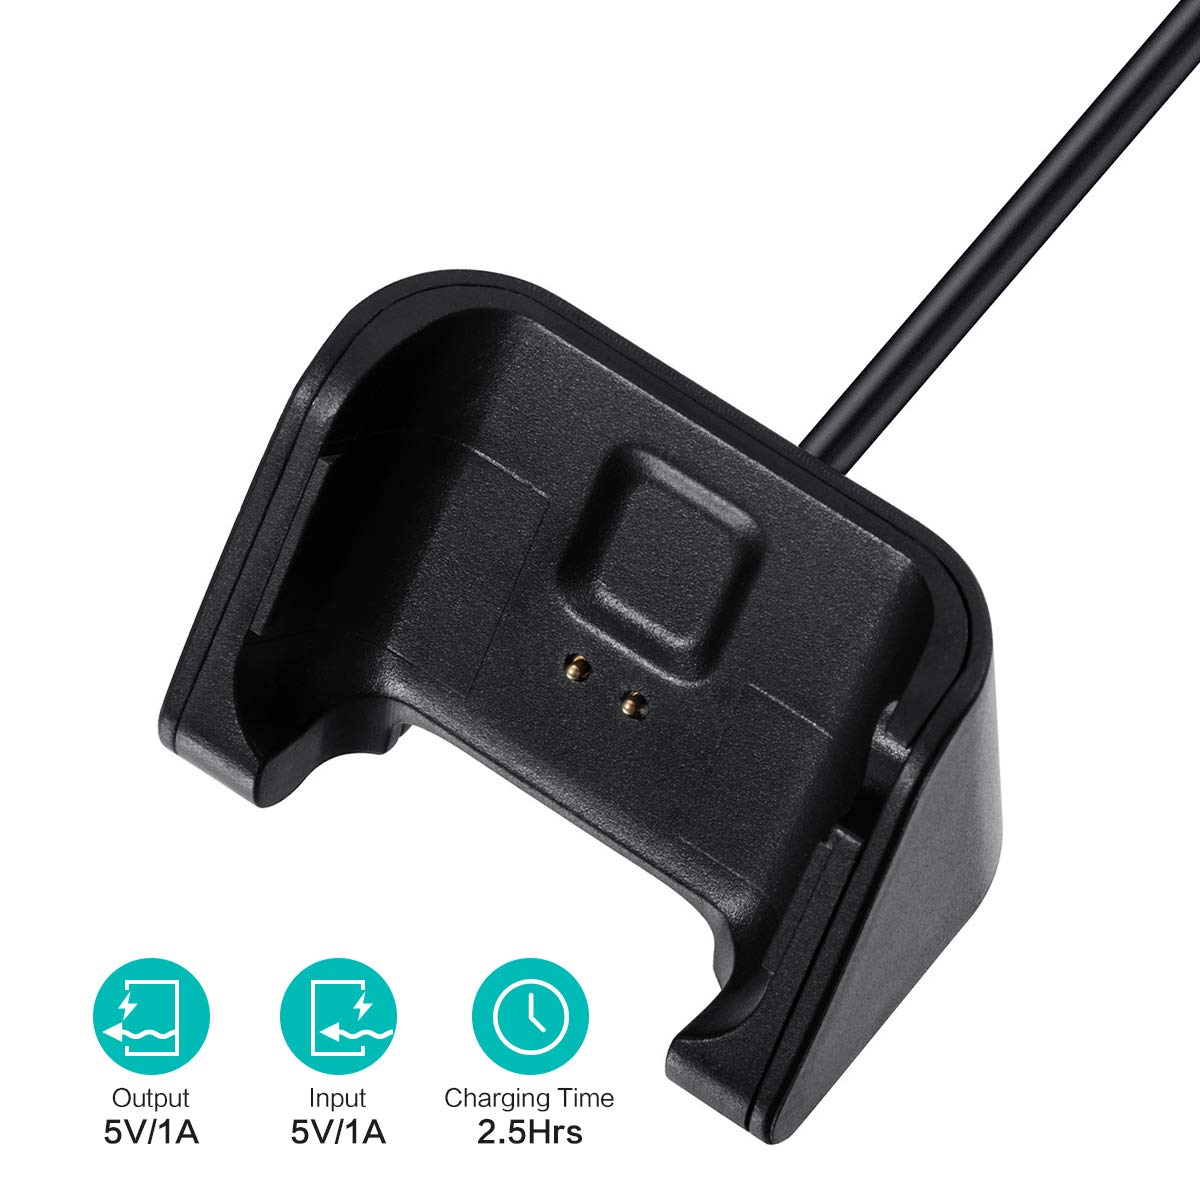 For Amazfit Bip Charger SIKAI Replacement Portable Magnetic Cradle Charging Dock for Xiaomi Huami Amazfit Bip Smart Watch Charging Dock With Micro USB ...